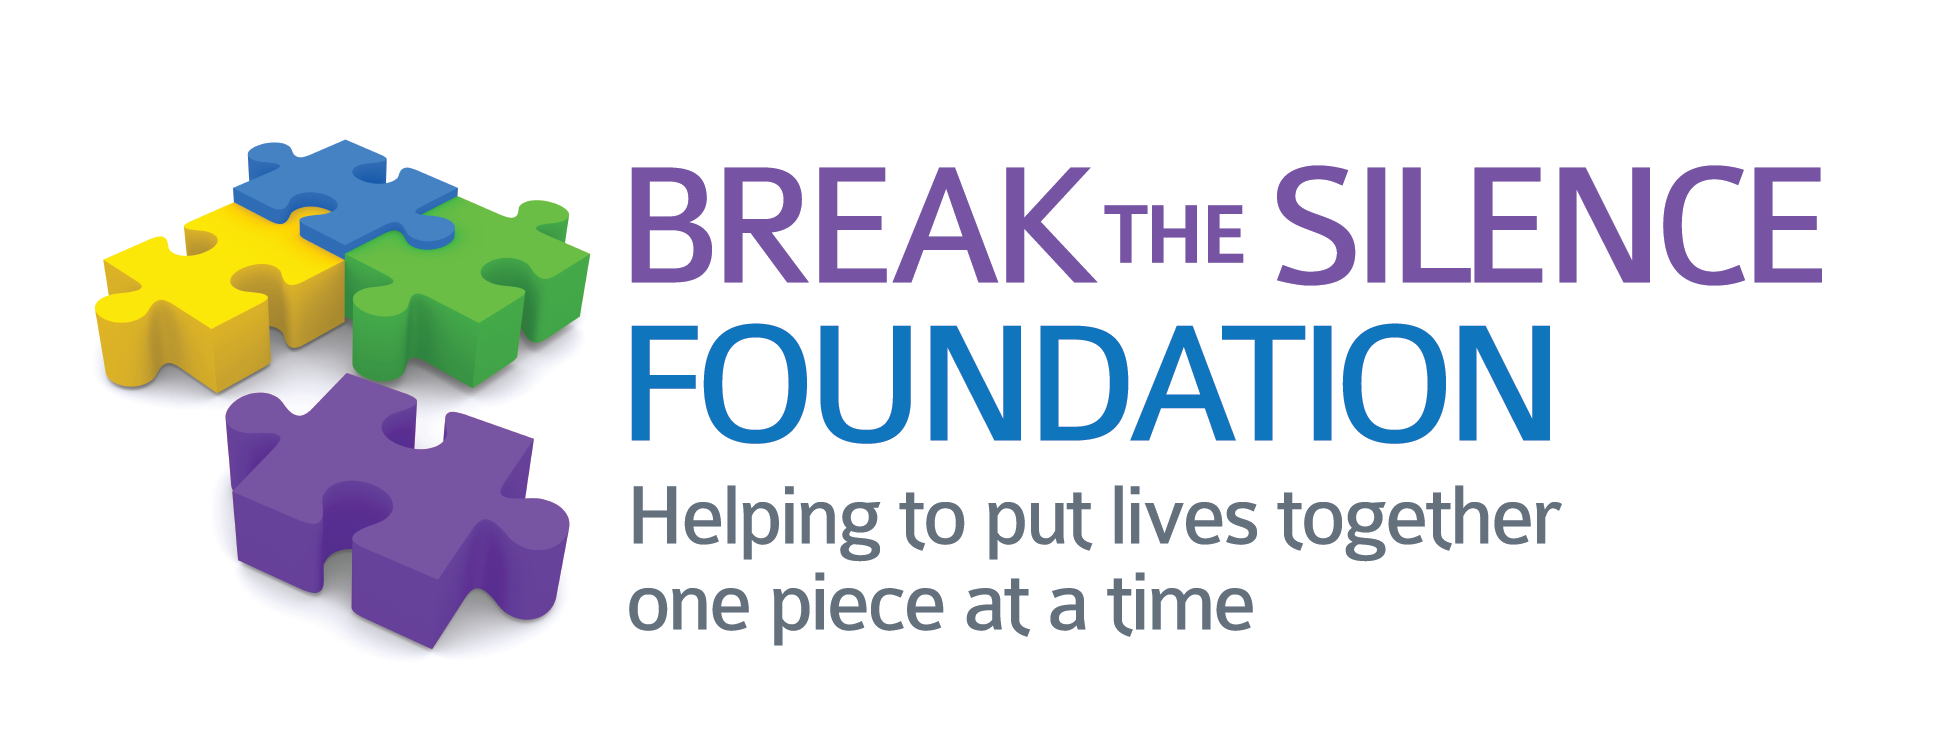 Break The Silence Foundation